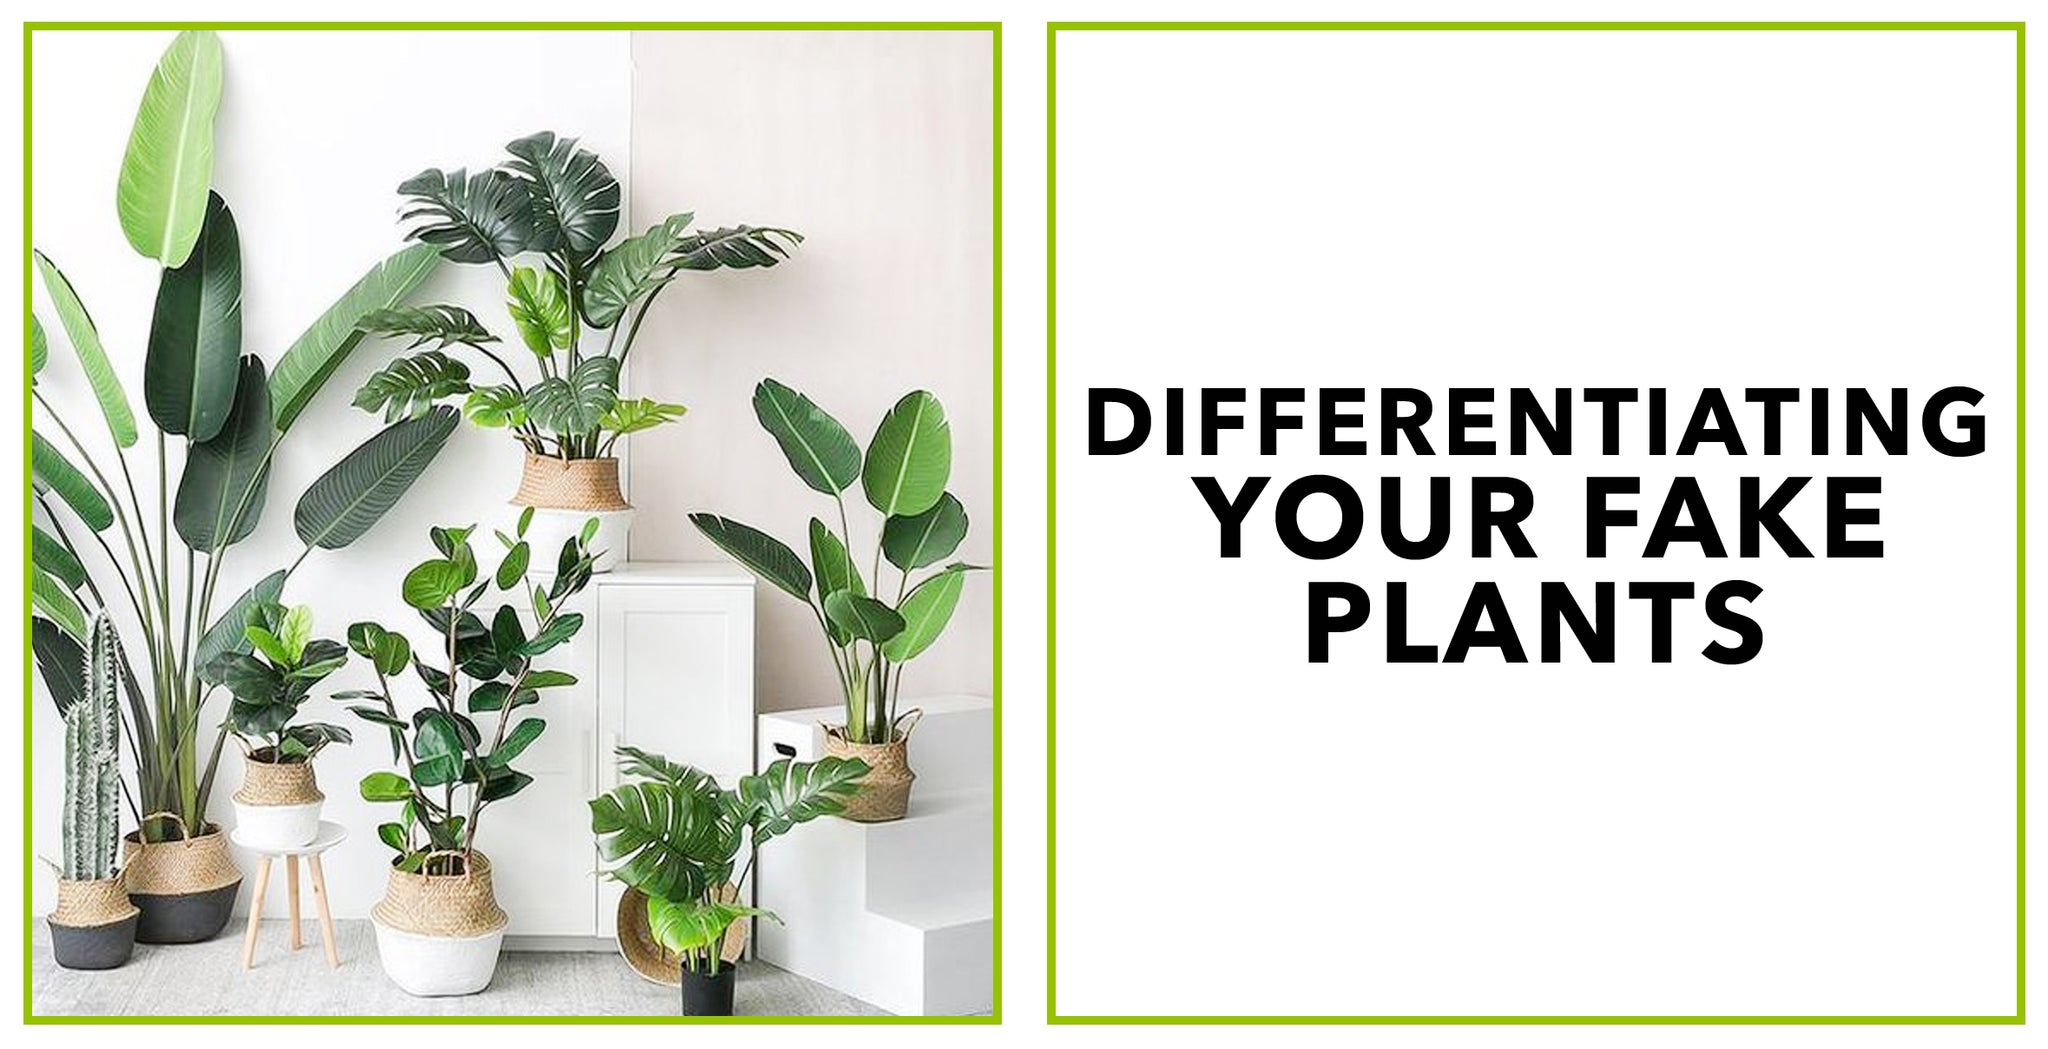 Differentiating Your Fake Plants